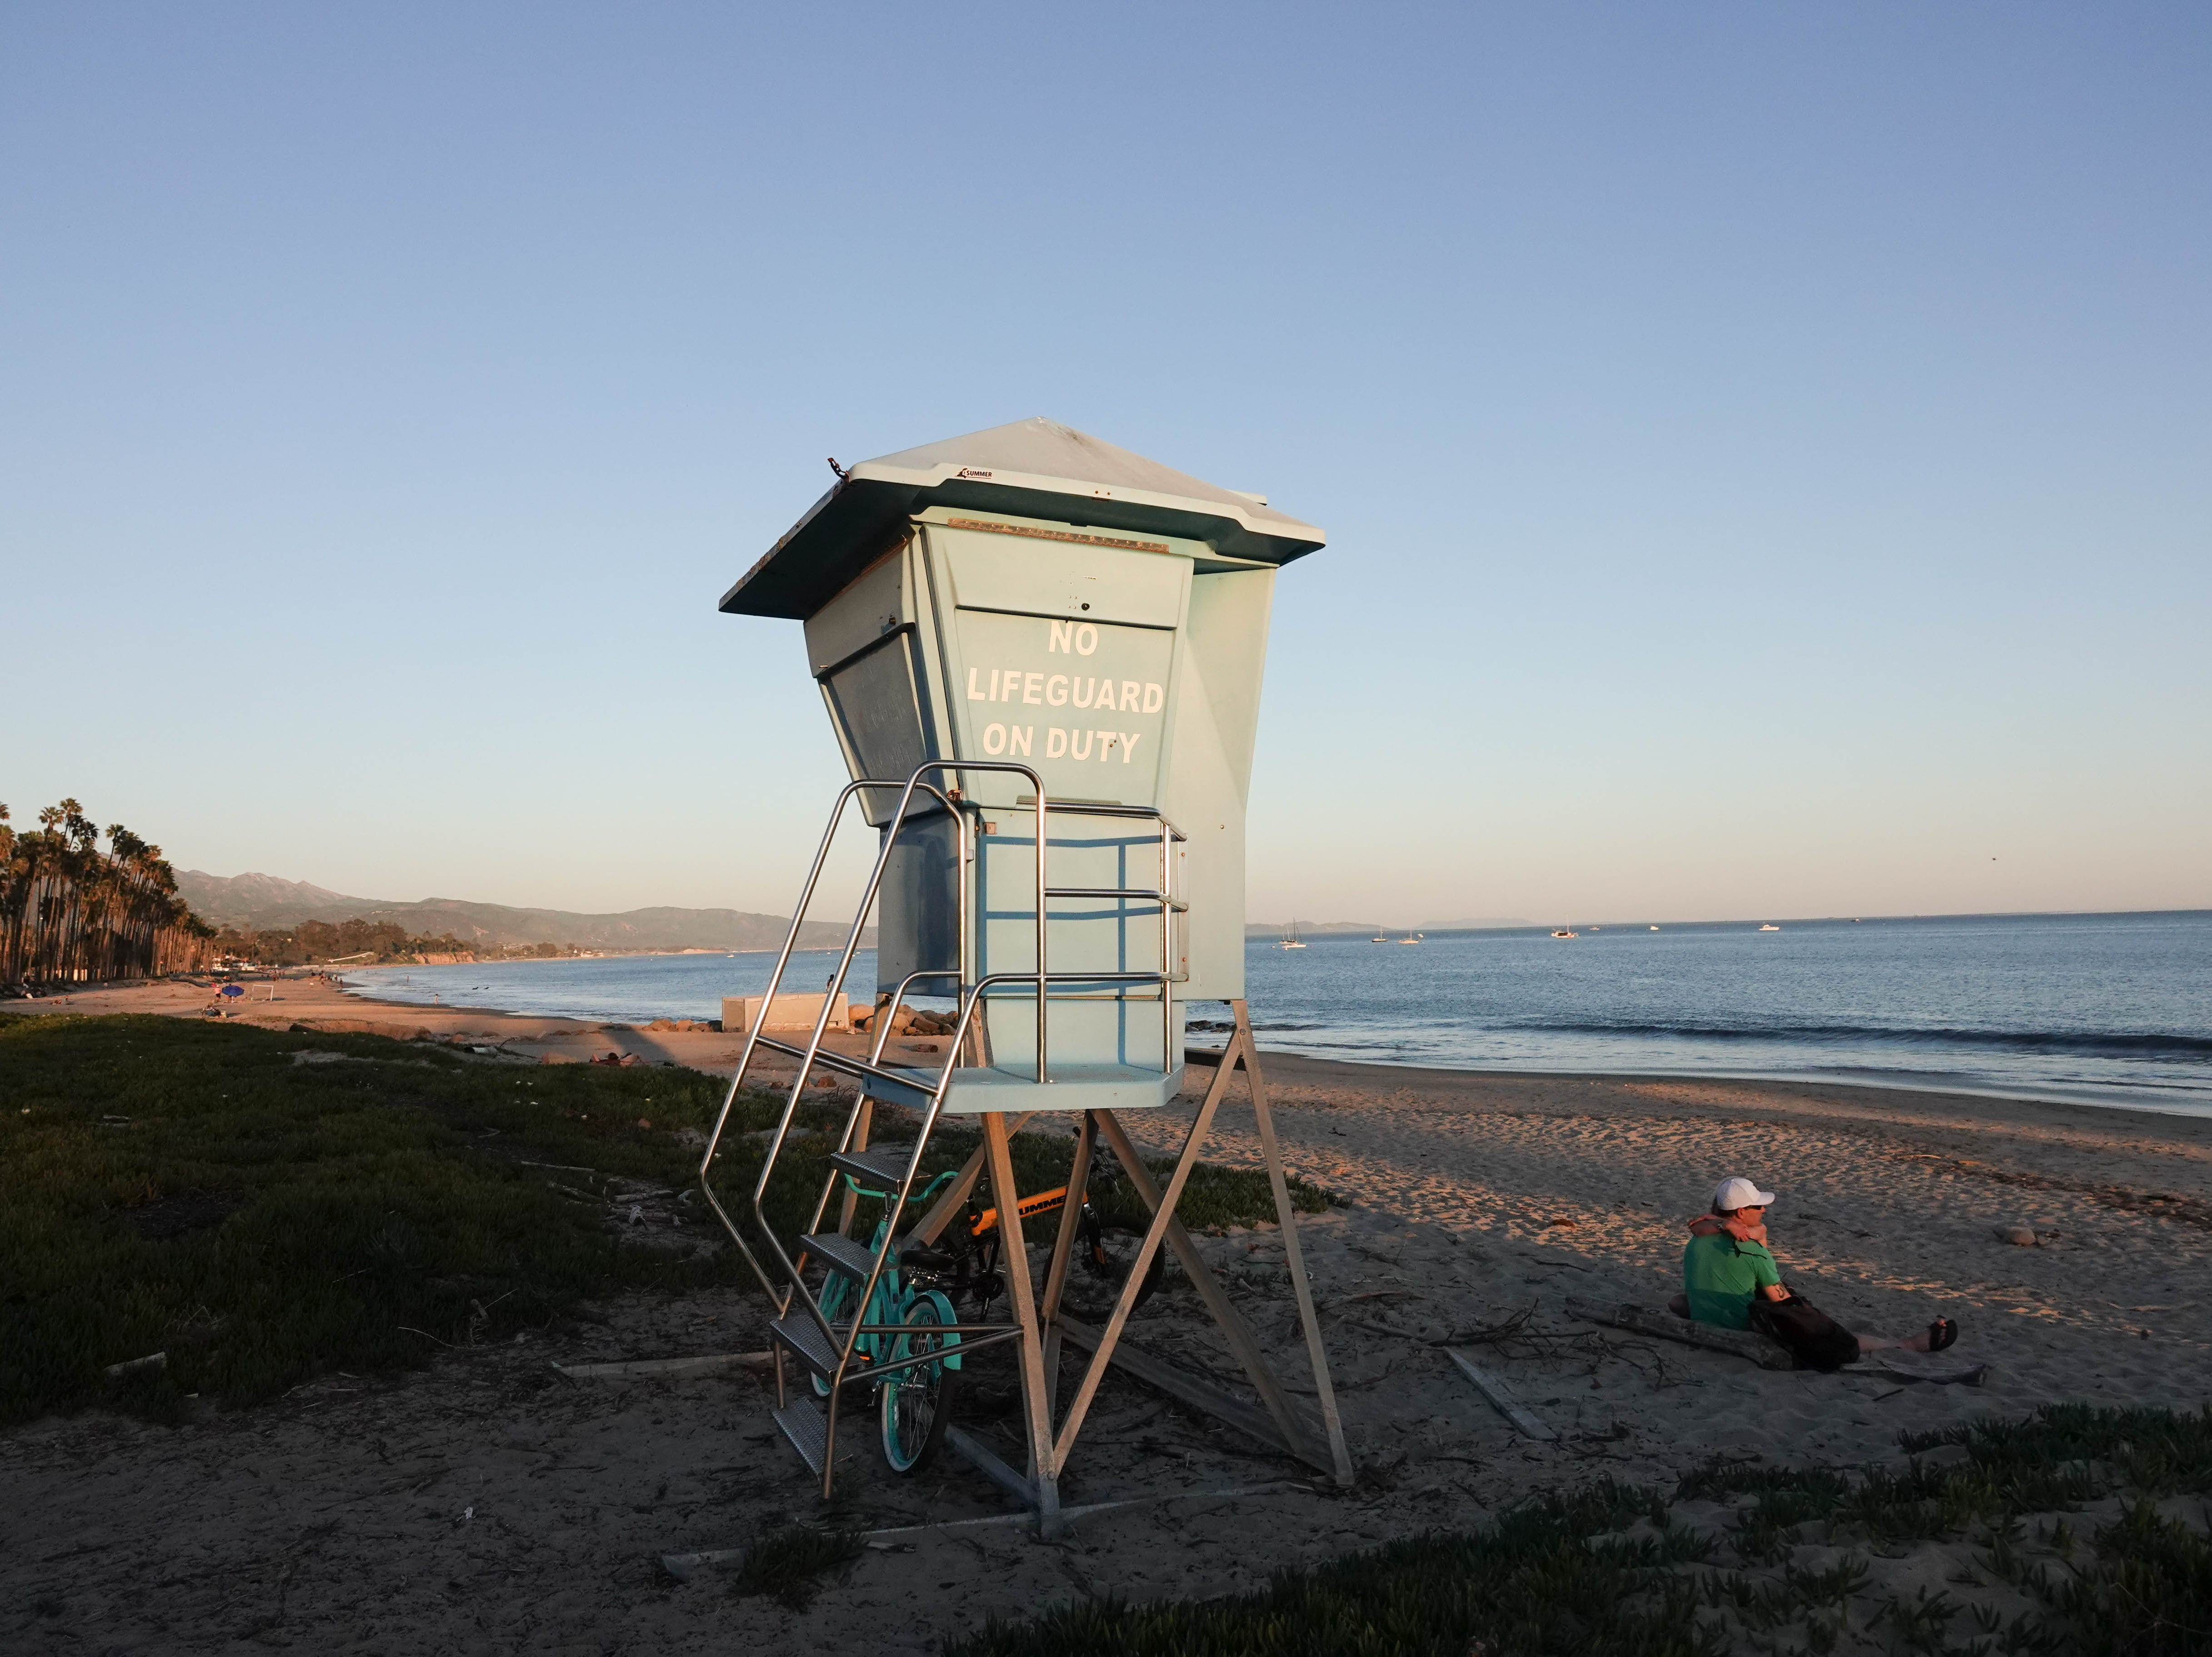 Lifeguard stand in Santa Barbara.